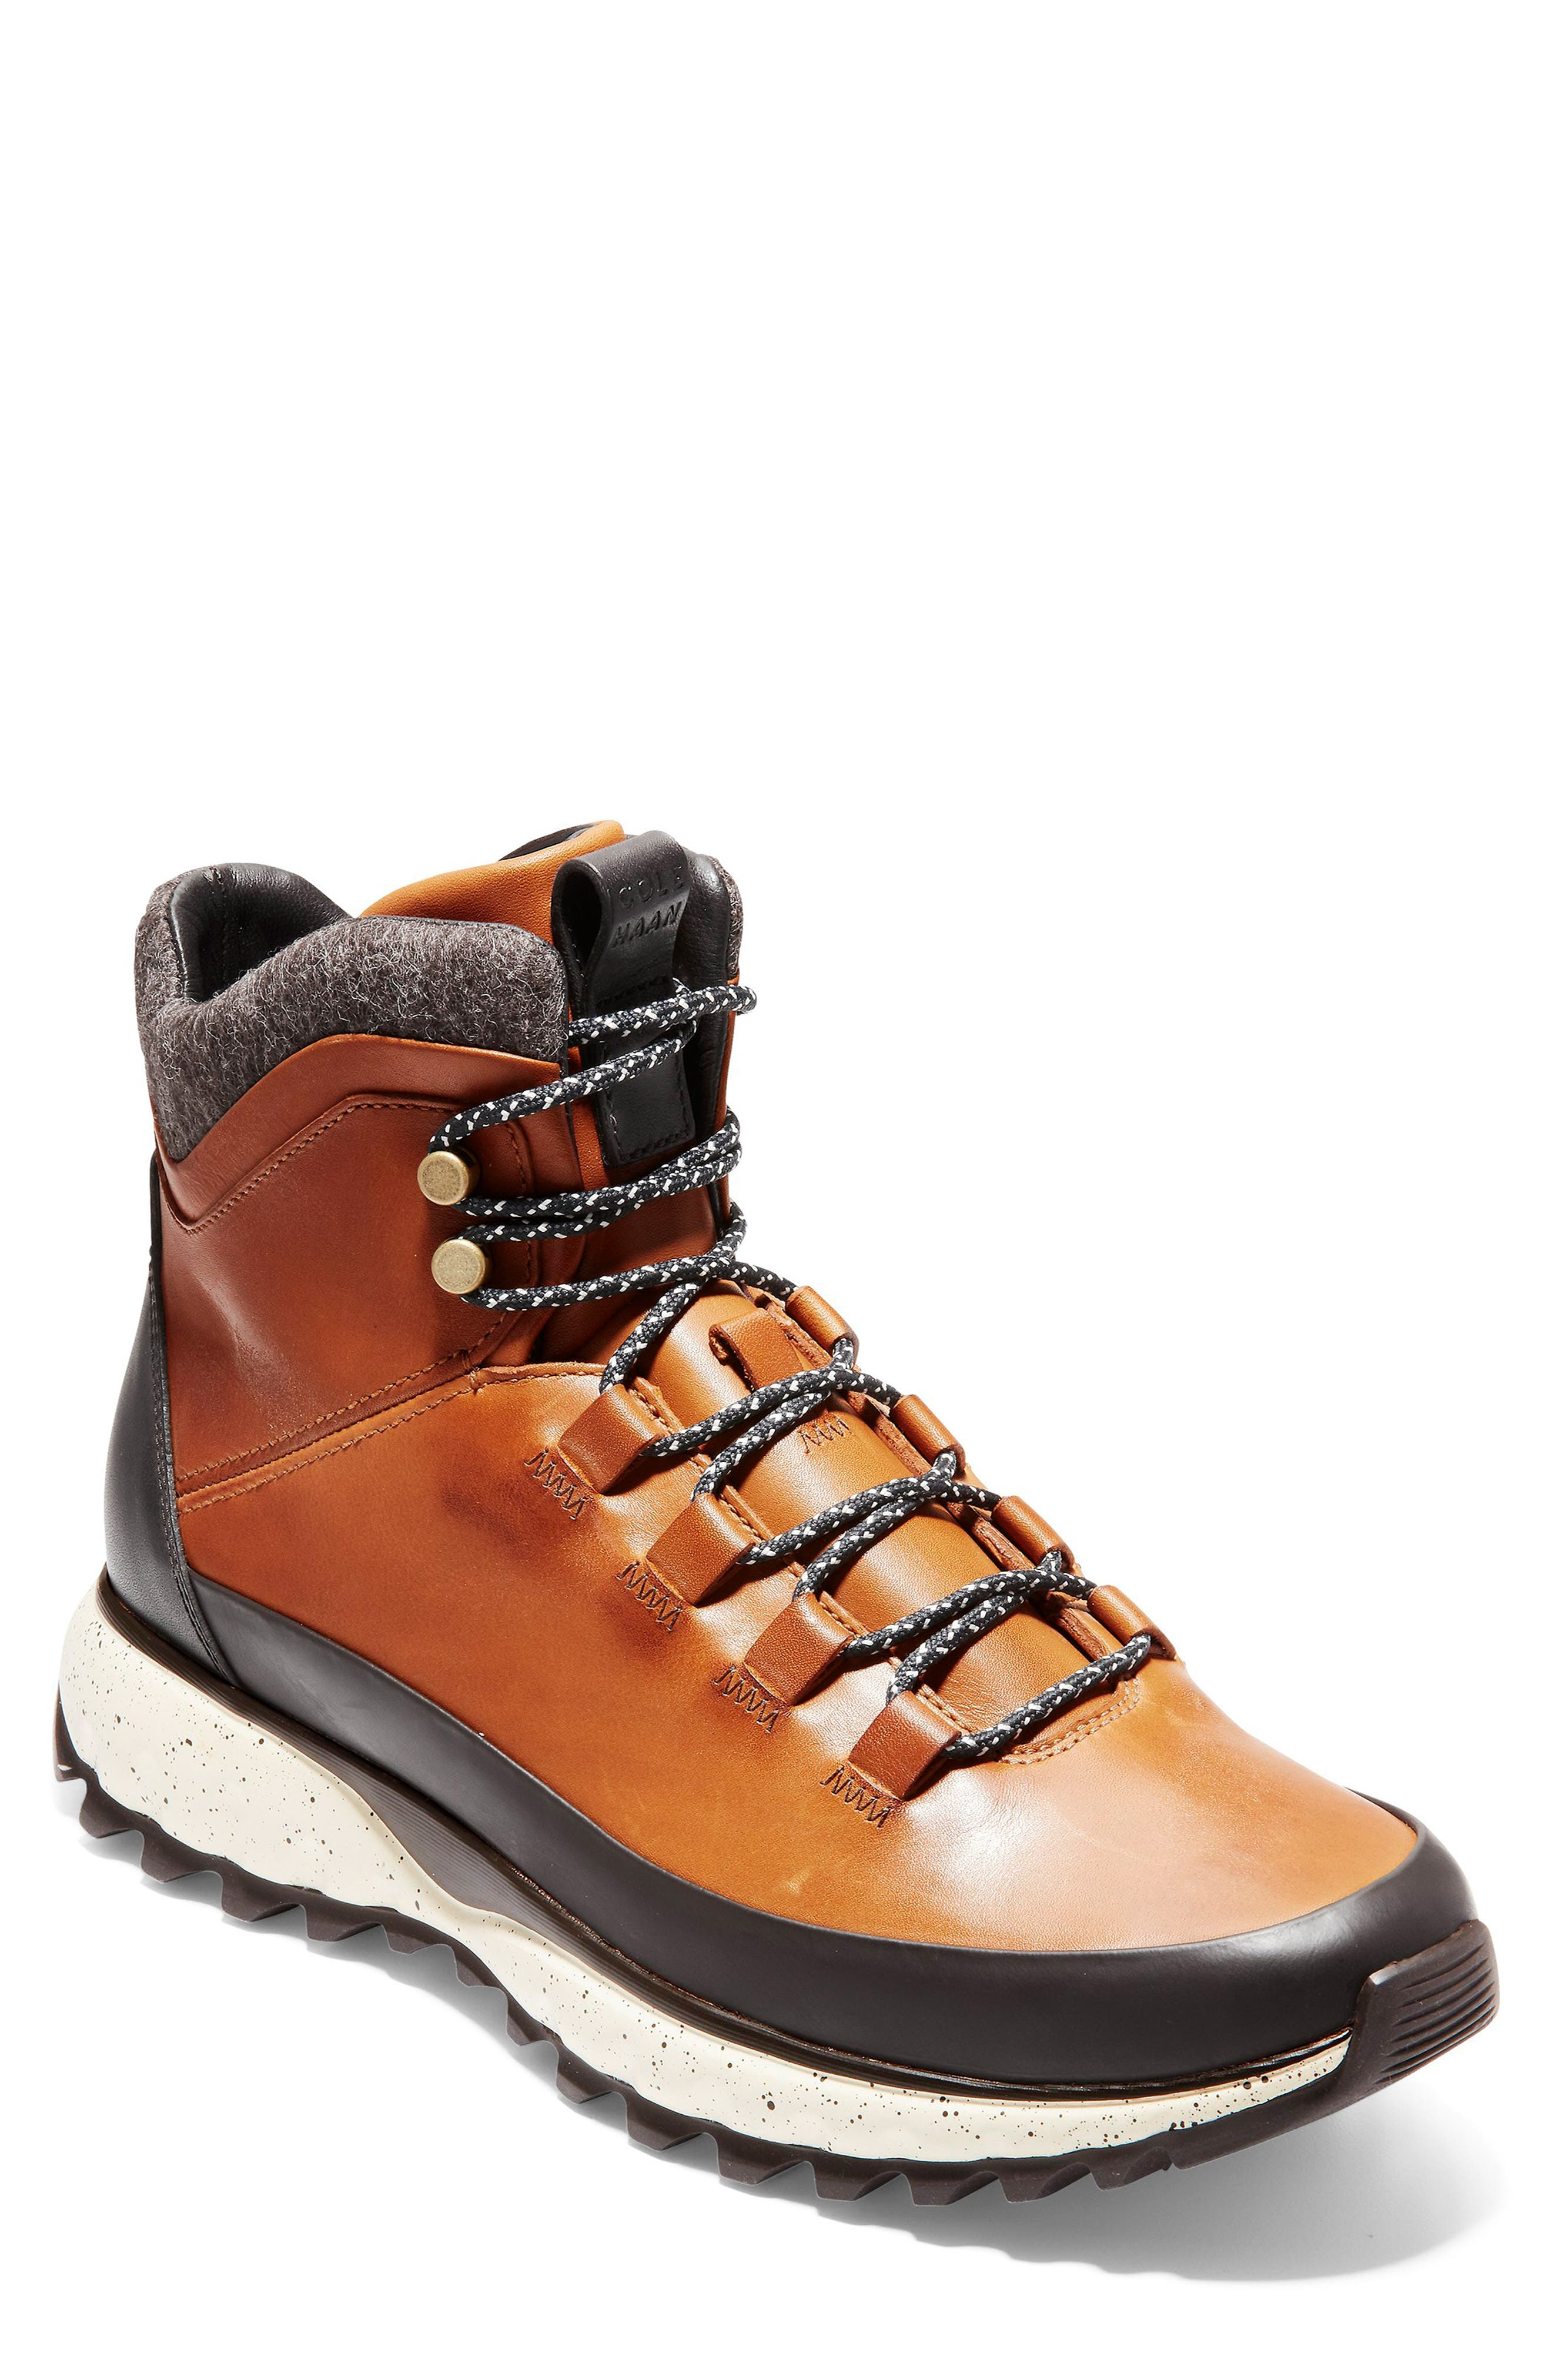 Cole Haan Zerogrand Explore All Terrain Waterproof Boot, Brown